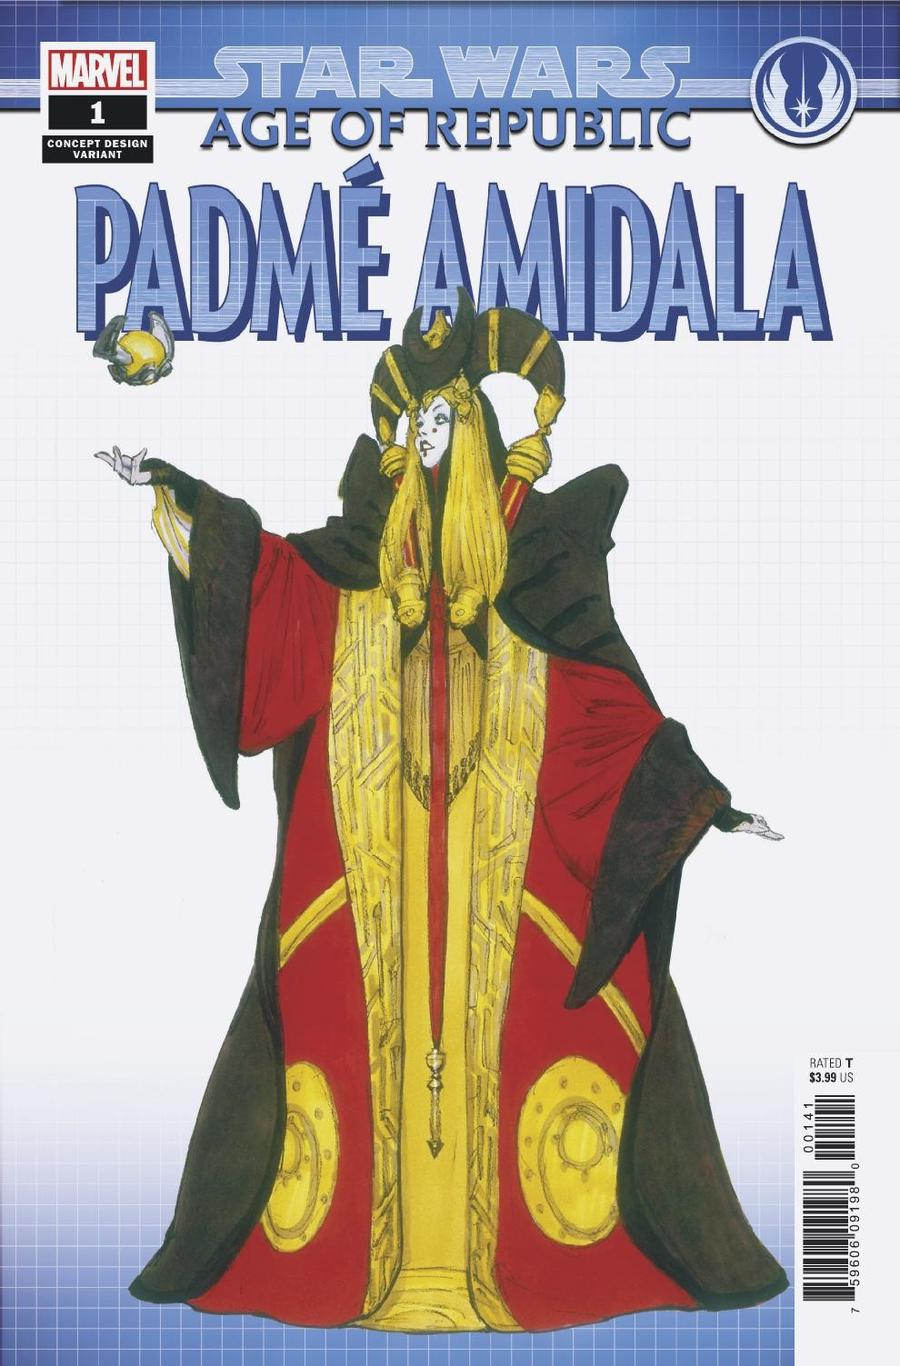 Star Wars Age Of Republic Padme Amidala #1 Cover B Variant Concept Design Cover